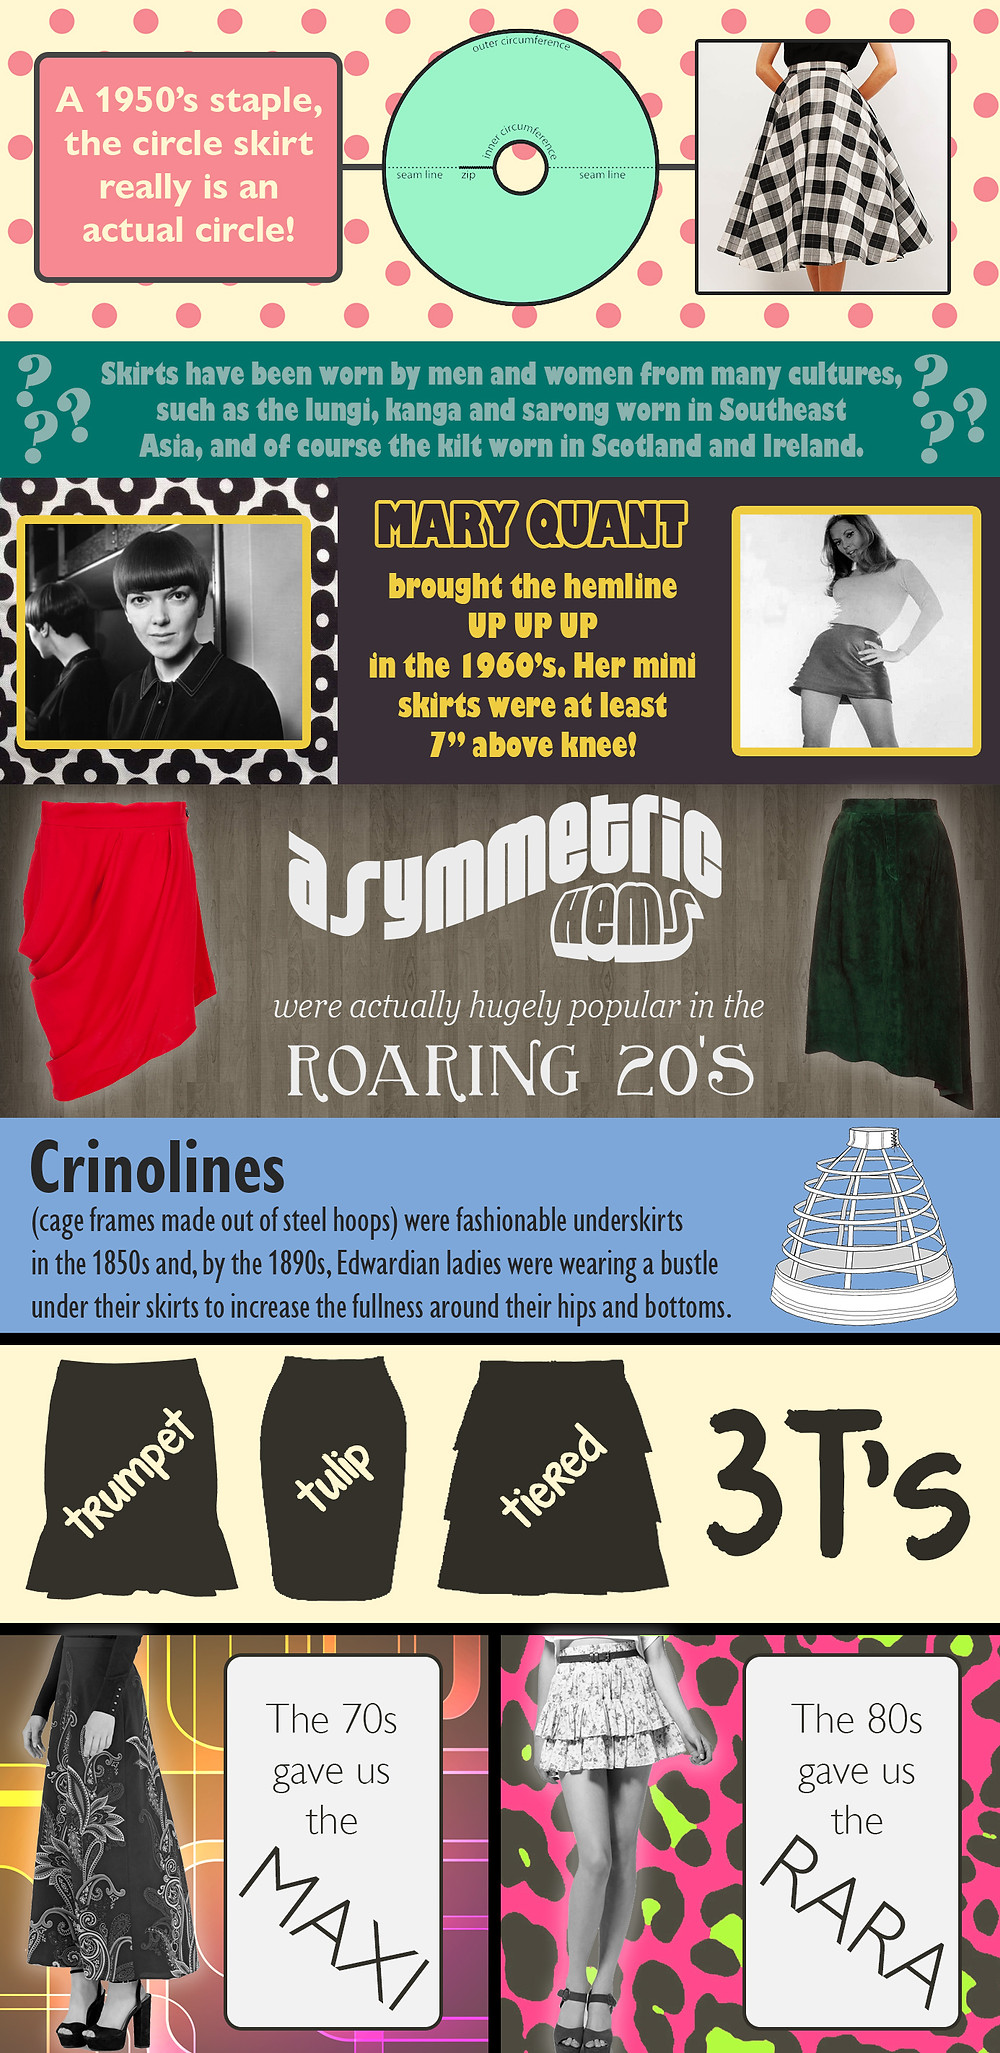 Vintage Skirts Infographic | Fashion Infographic | Vintage Fashion Infographic